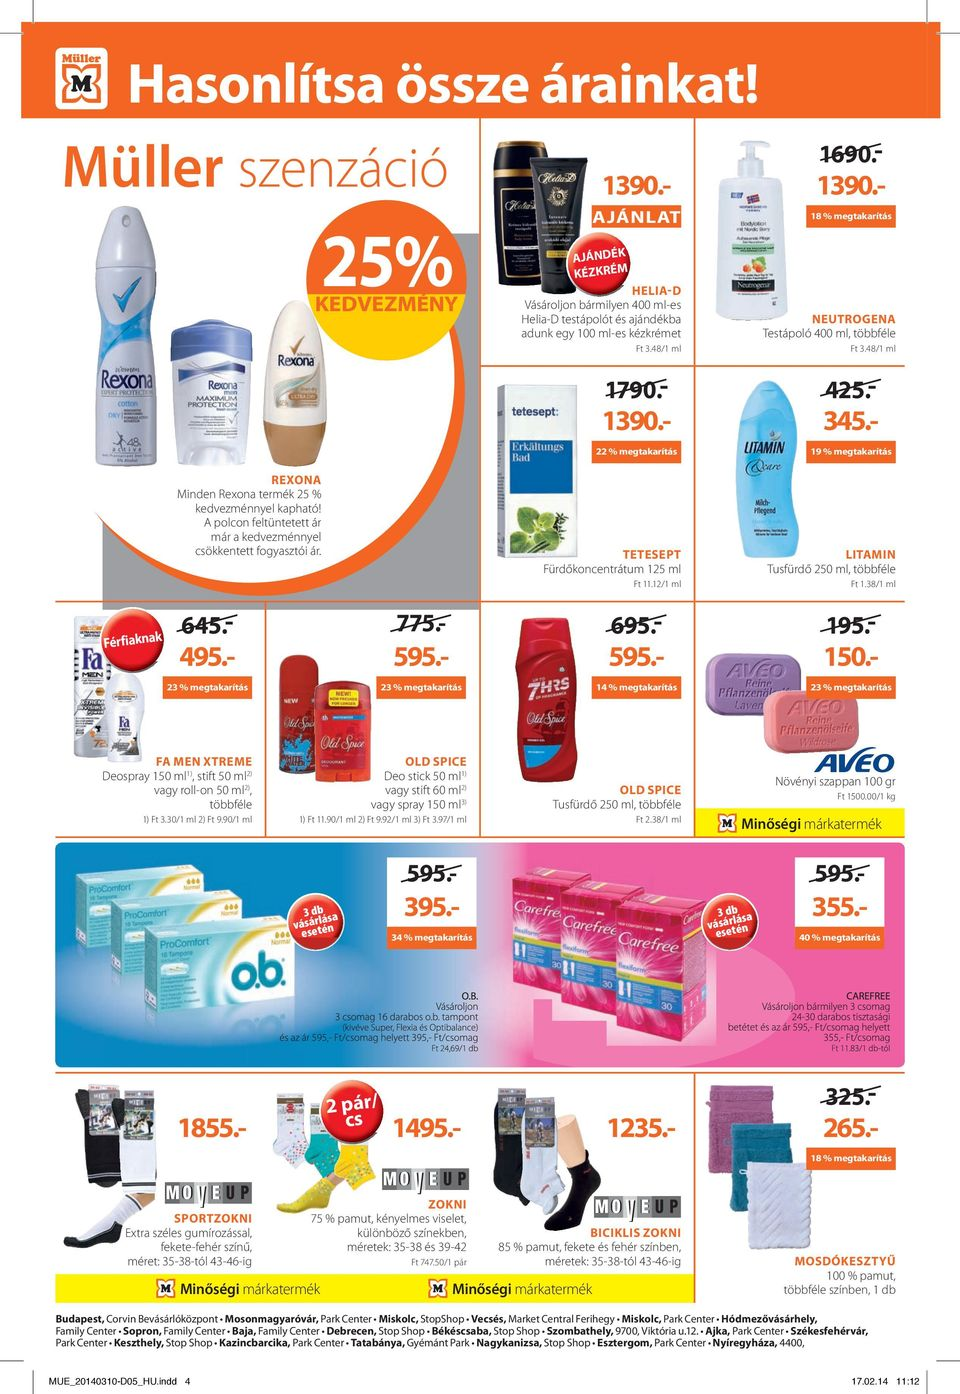 12/1 ml LITAMIN Tusfürdő 250 ml, Ft 1.38/1 ml Férfiaknak 775.- 645.- 195.- 150.- 23 % 23 % 14 % 23 % FA MEN XTREME Deospray 150 ml 1), stift 50 ml 2) vagy roll-on 50 ml 2), 1) Ft 3.30/1 ml 2) Ft 9.